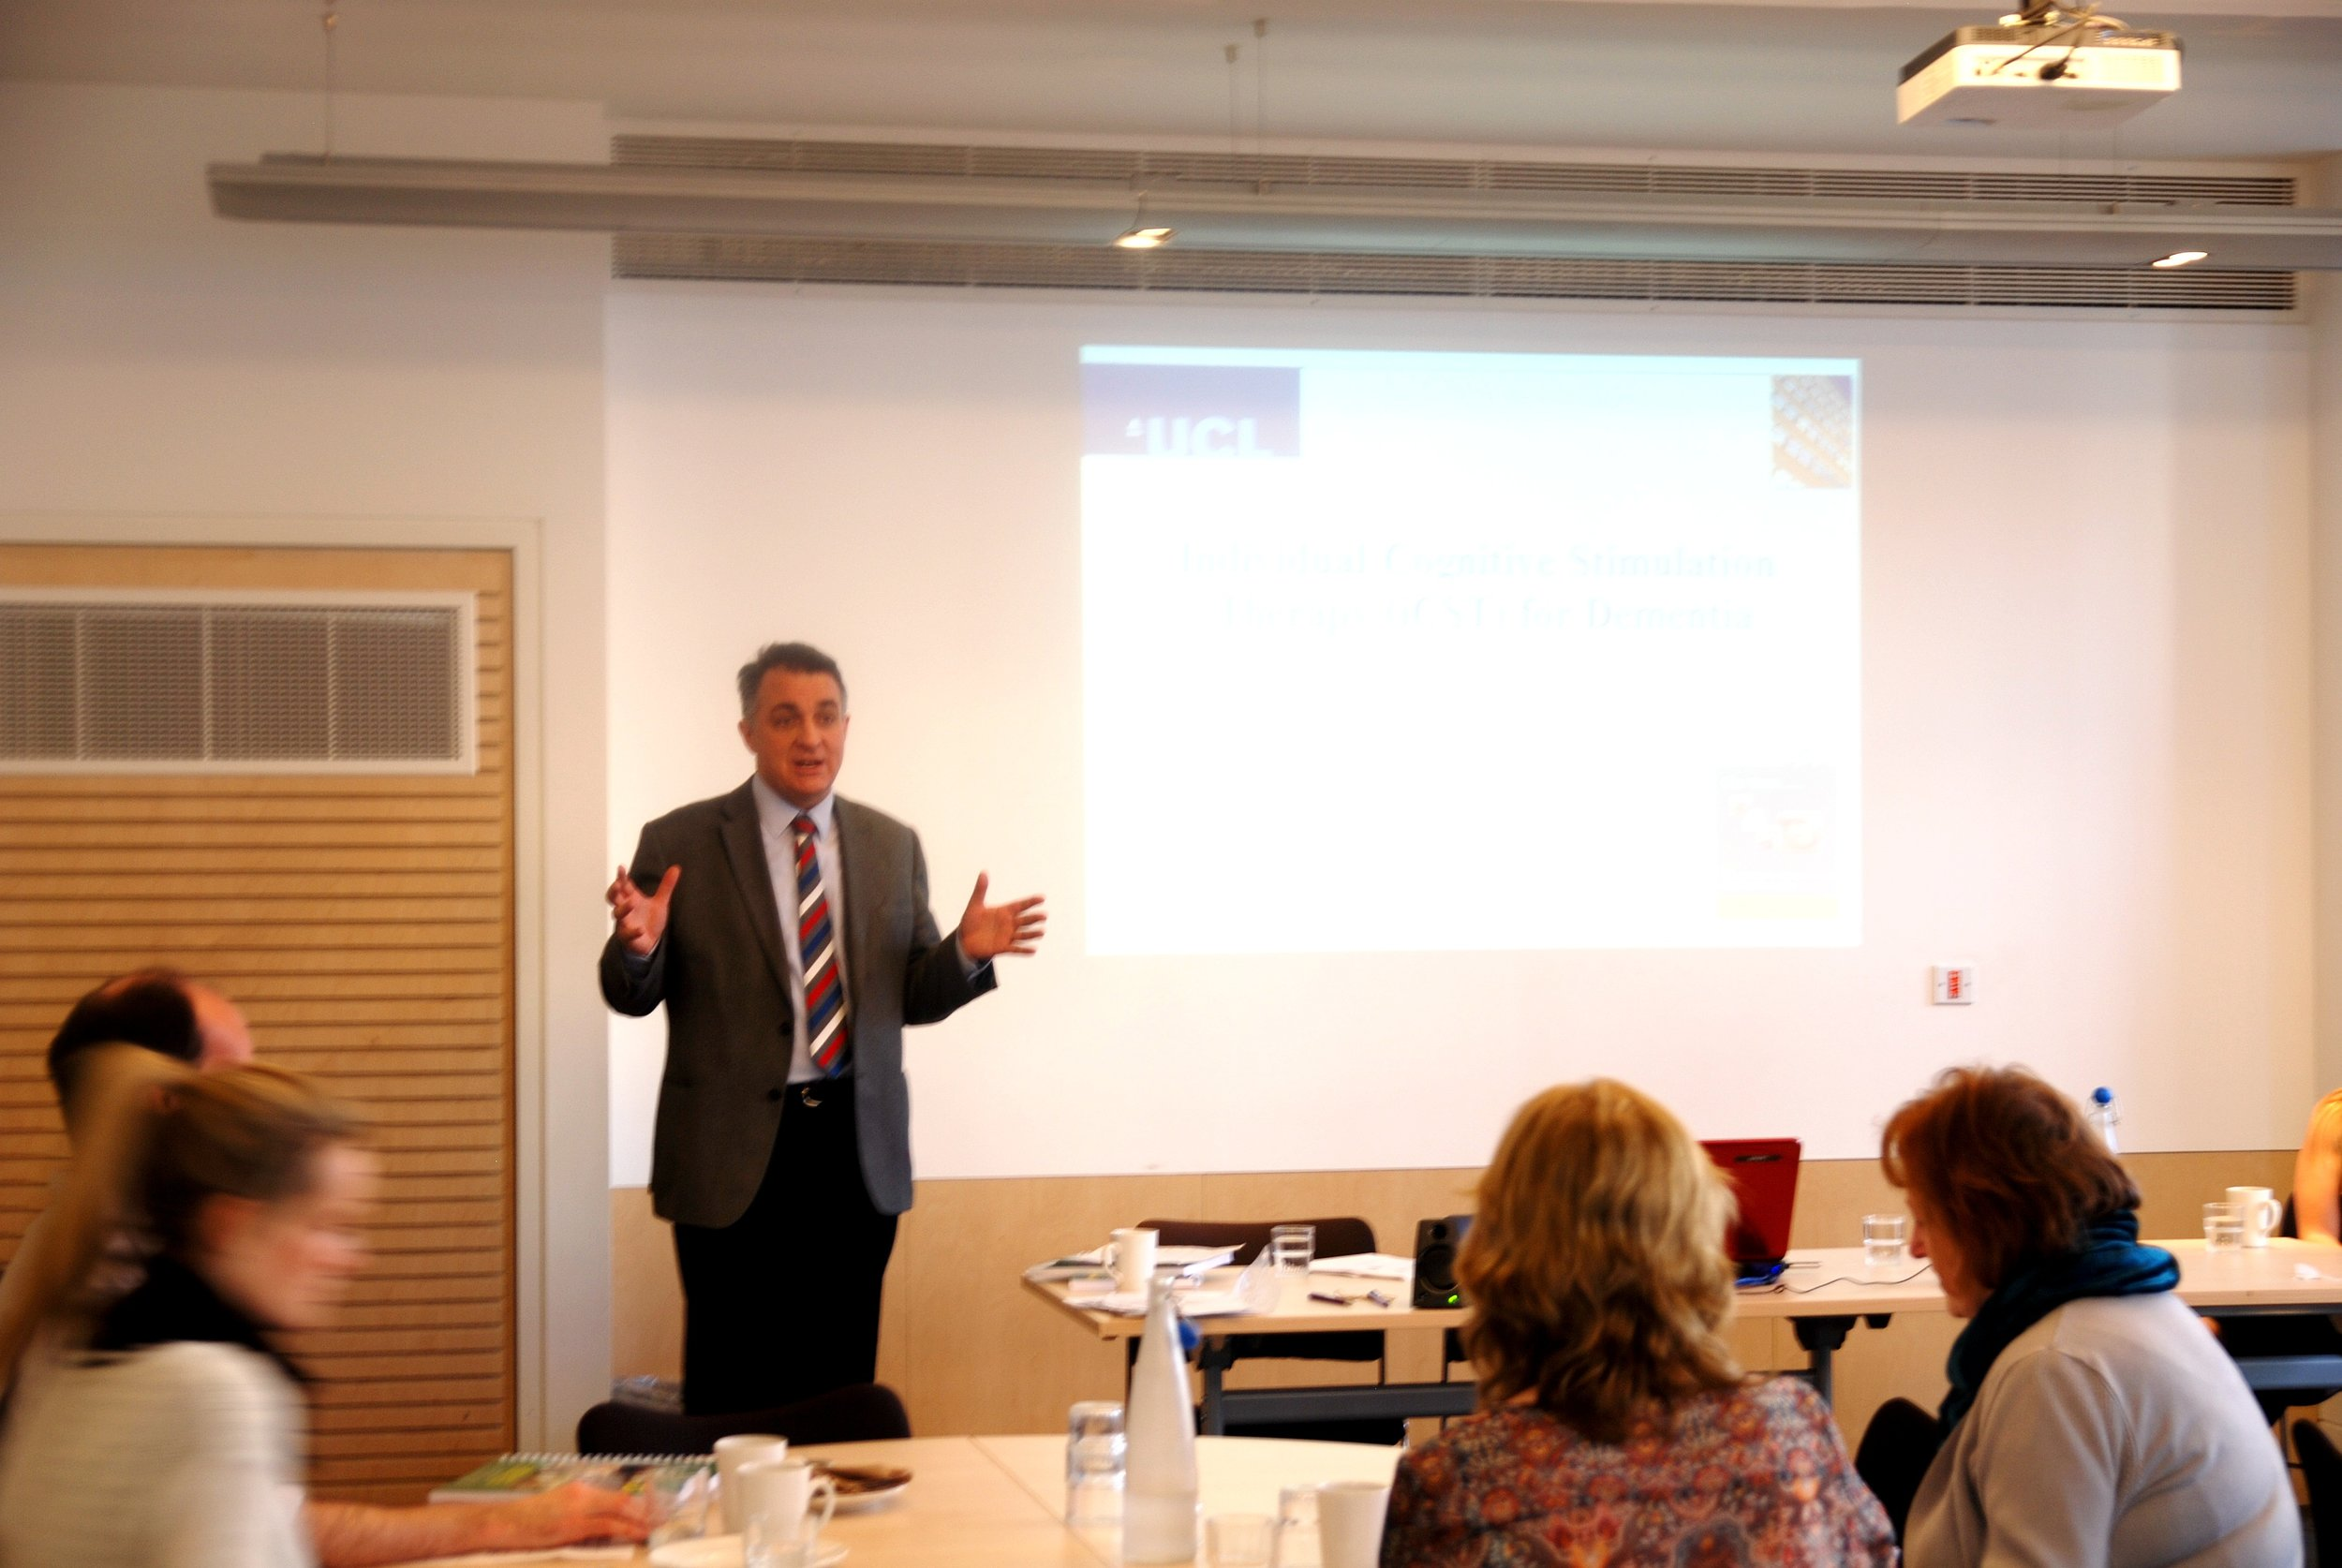 Professor Martin Orrell disseminated iCST research findings to the iCST research team at University College London